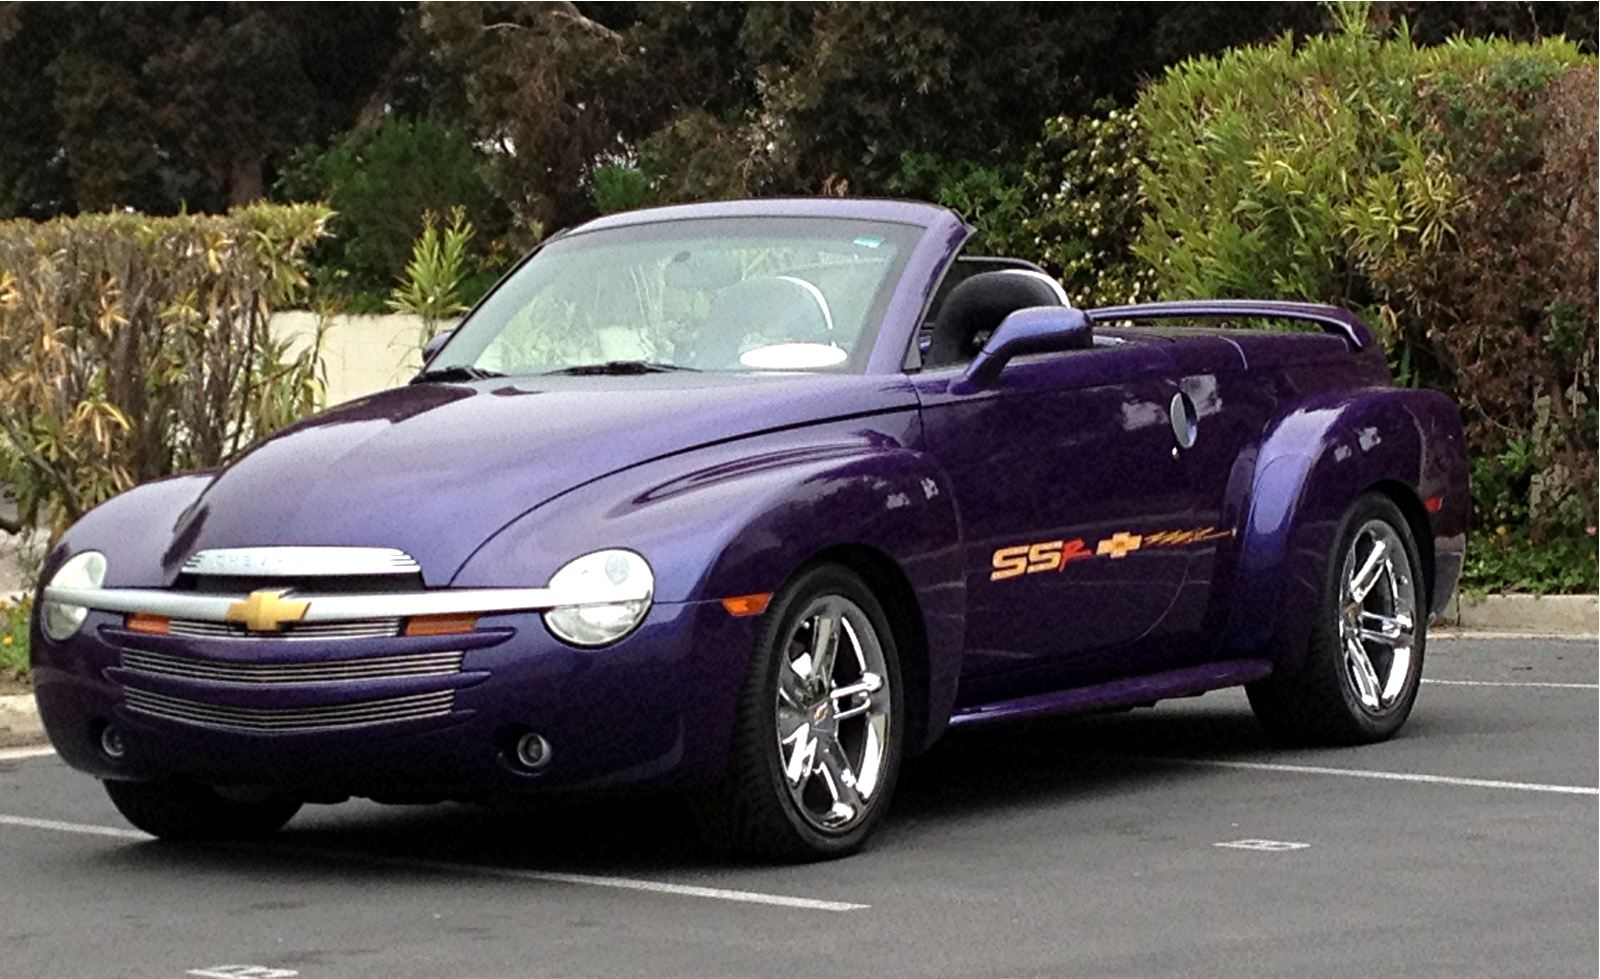 All Chevy 2006 chevrolet ssr for sale : 2004 Purple SSR 4 Sale - Chevy SSR Forum